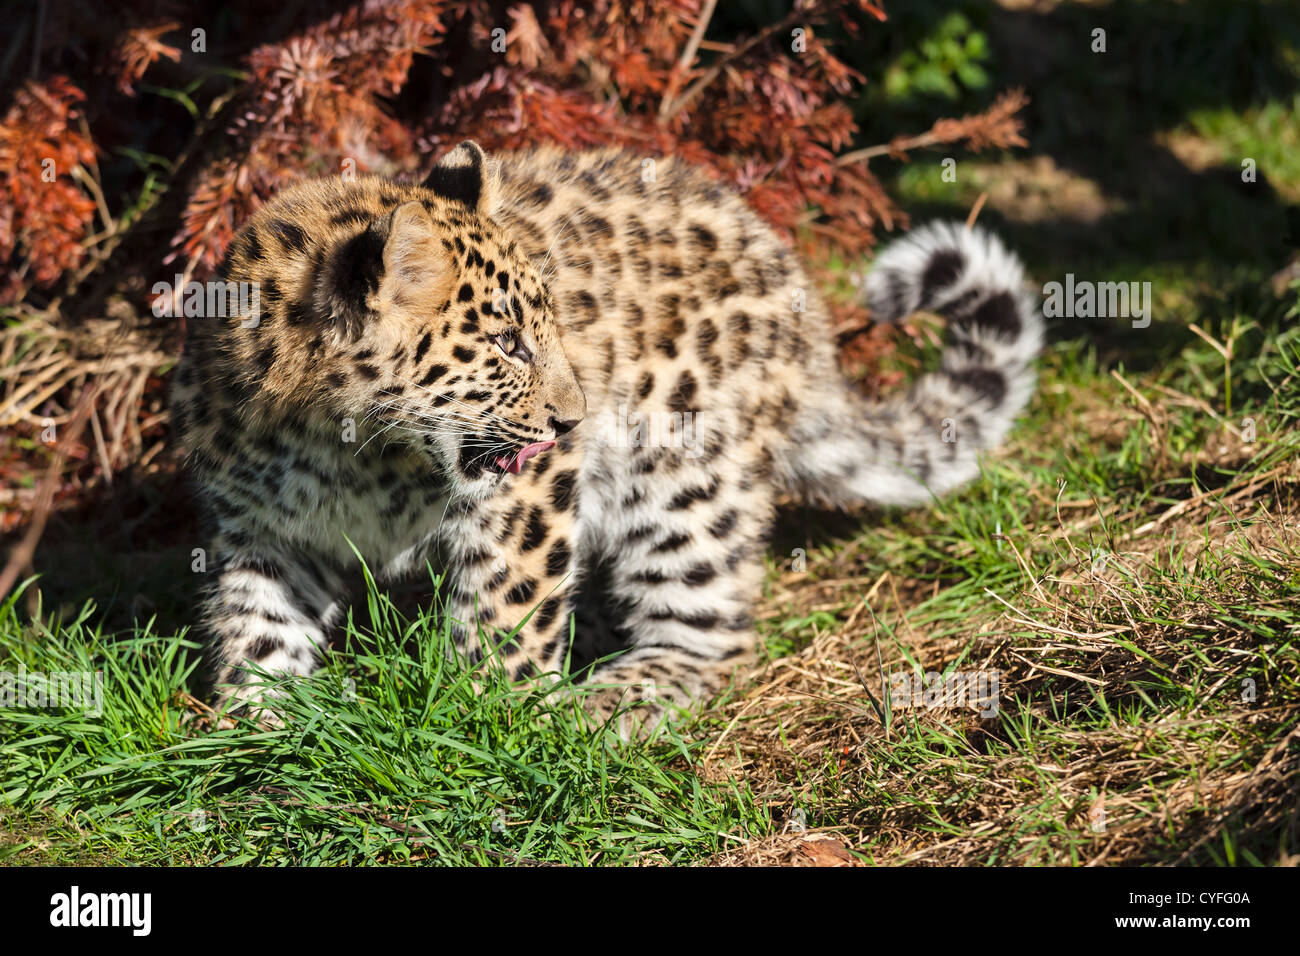 Cute Baby Amur Leopard Cub Looking Over Shoulder Panthera Pardus Orientalis - Stock Image